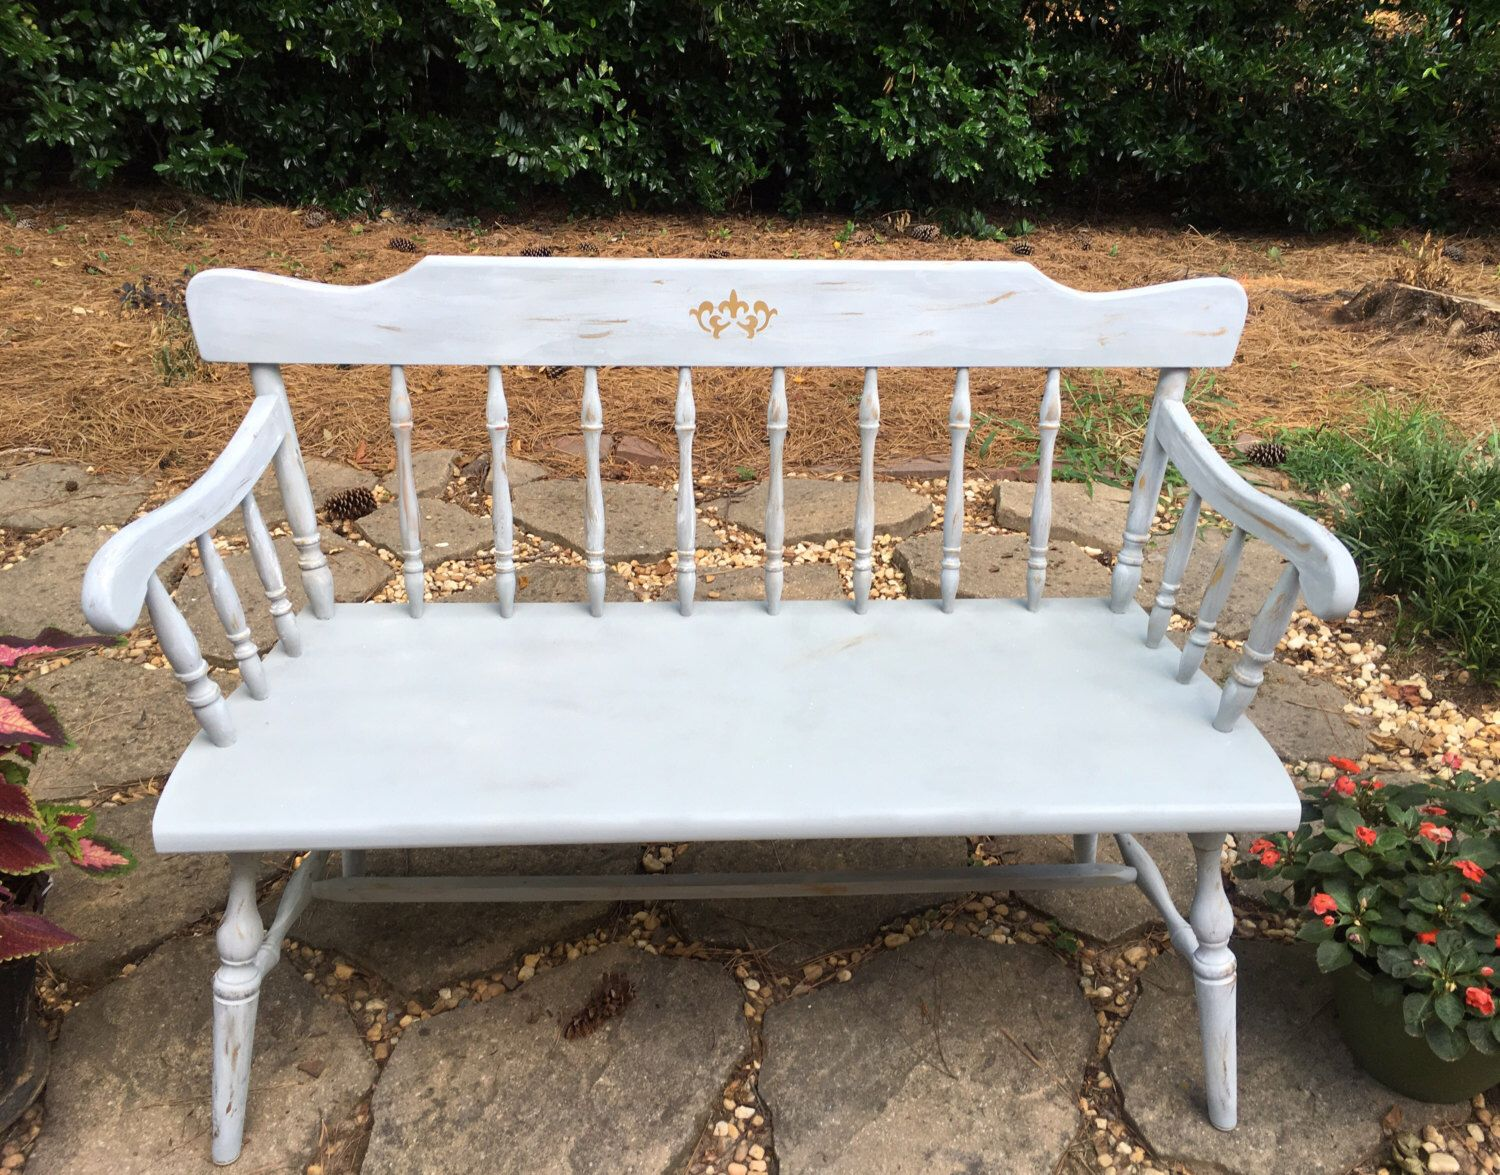 Vintage Chalk Painted Deacon Bench Distressed Country Bench Shabby Chic Outdoor Bench Country Cottage Farm Rustic Wood Wall Art Wood Bench Wooden Bench